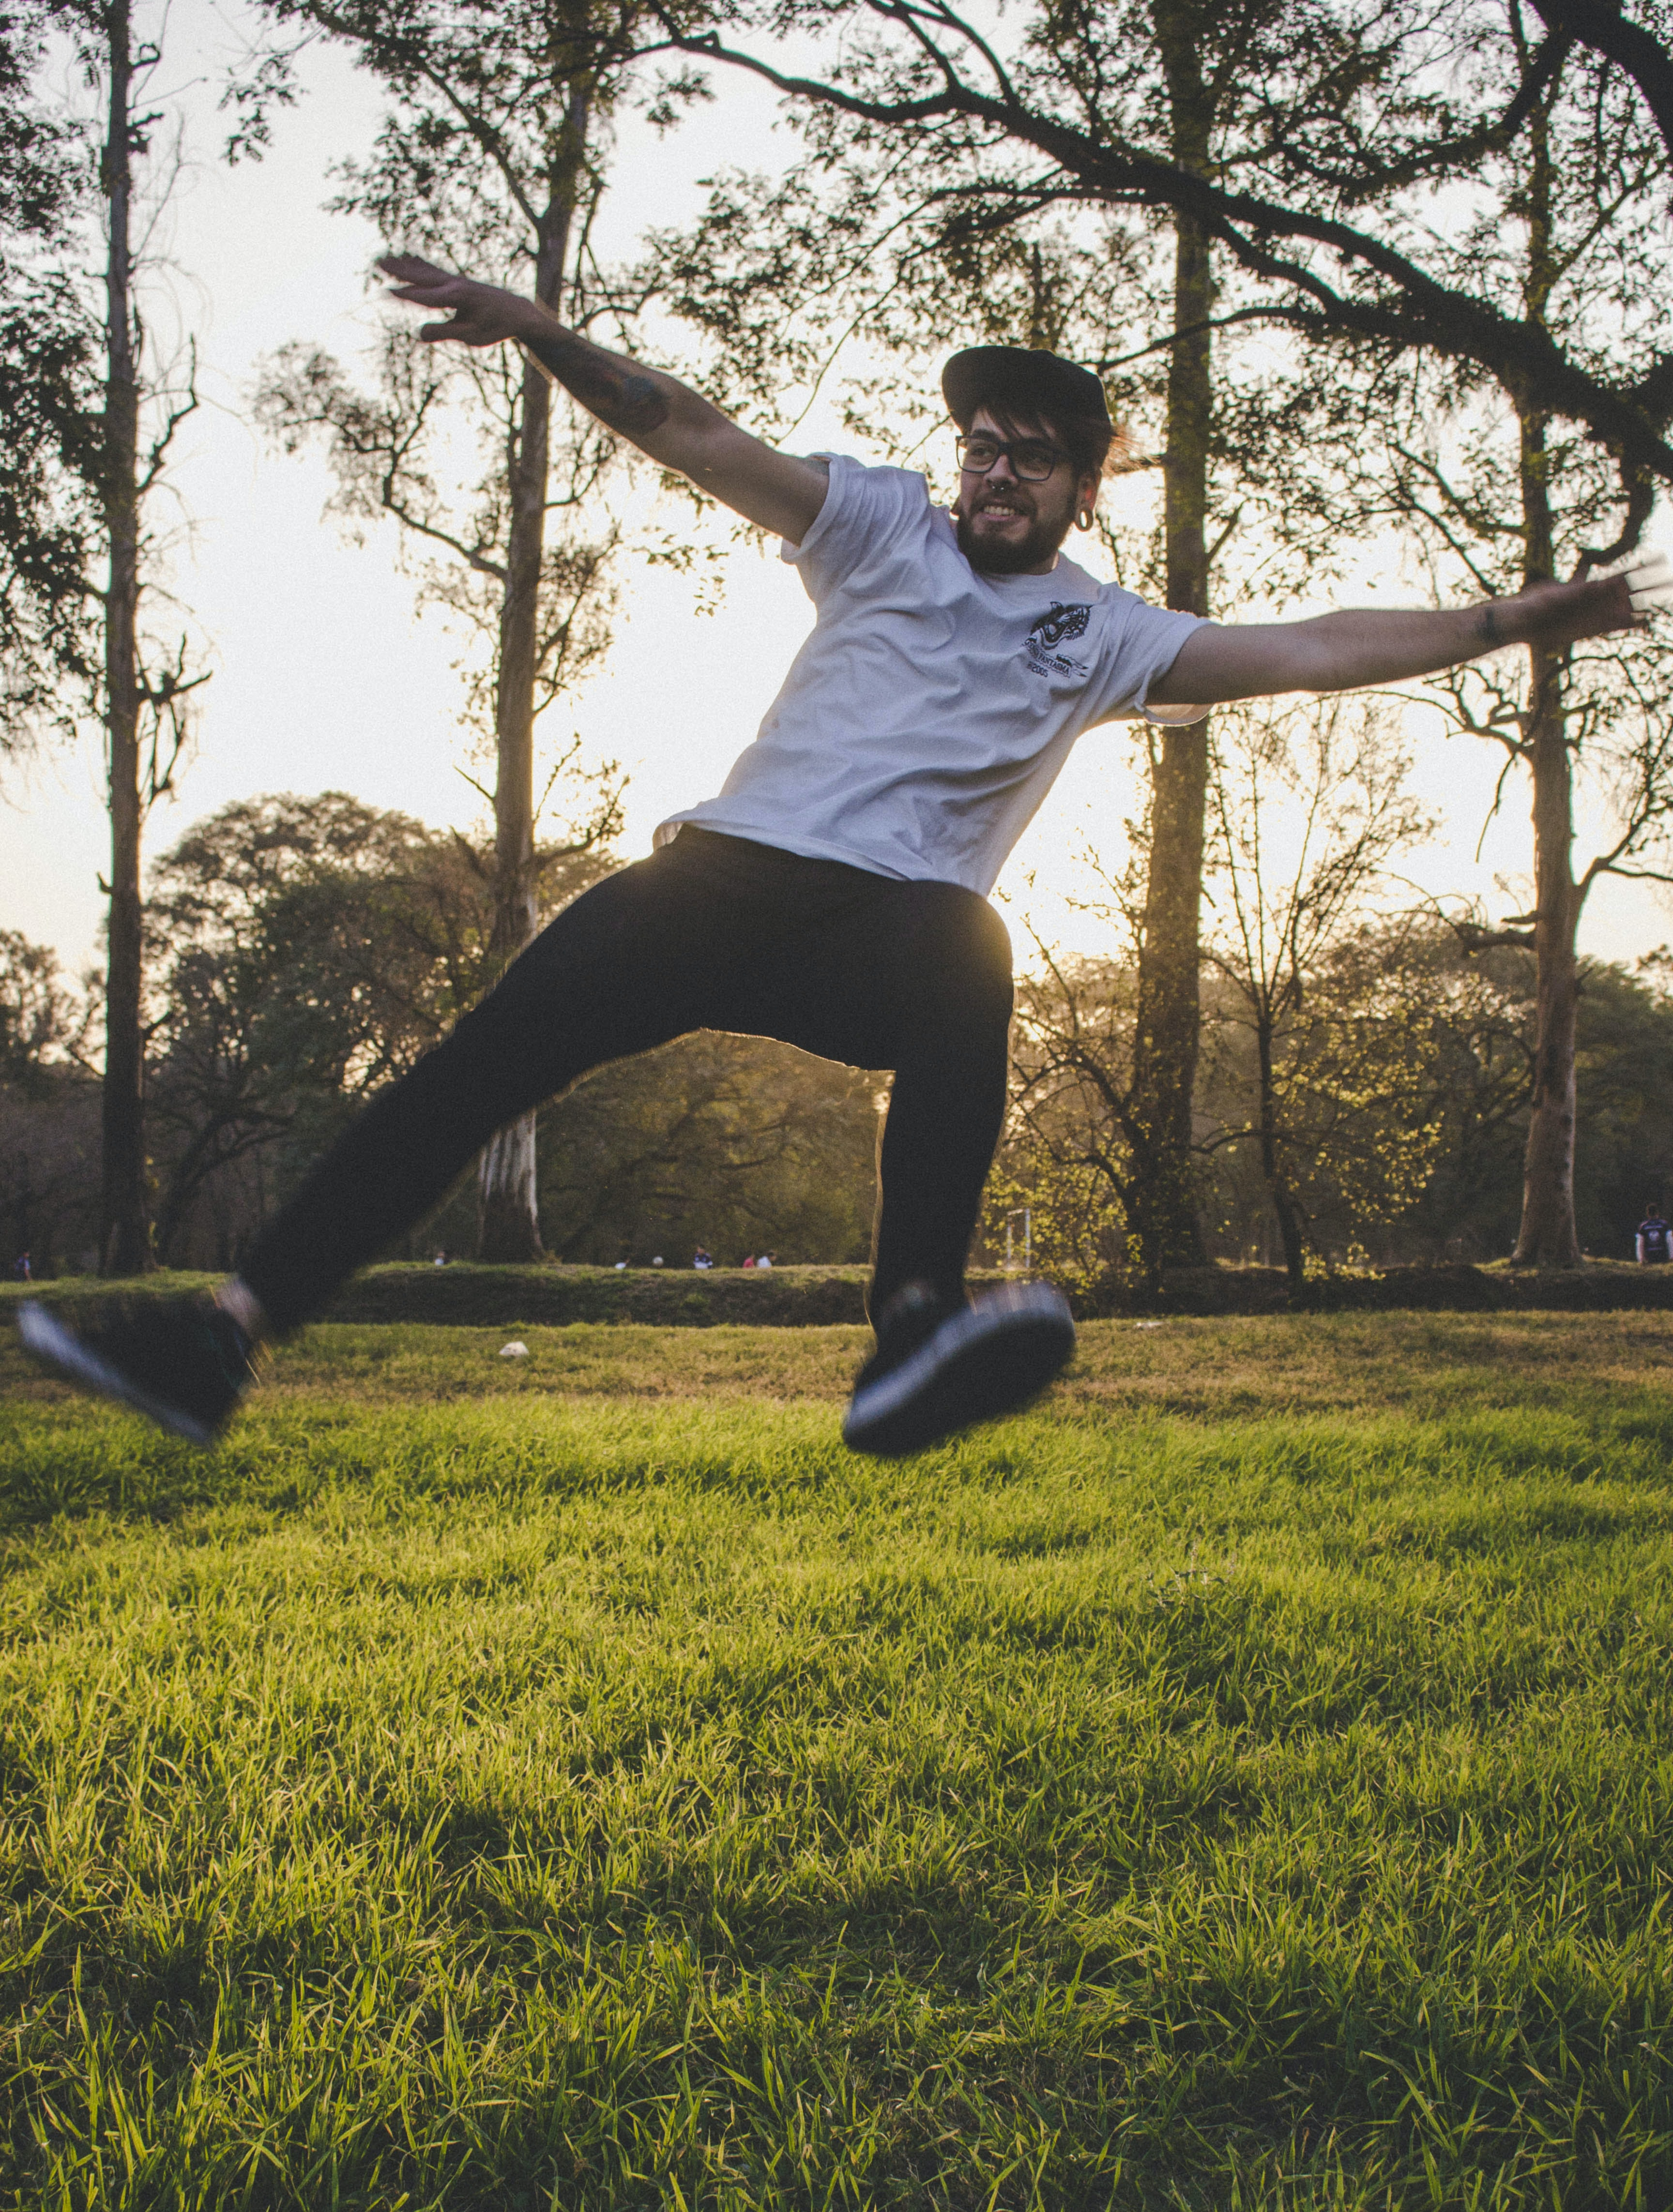 man jumping above green grass with trees behind during golden hour